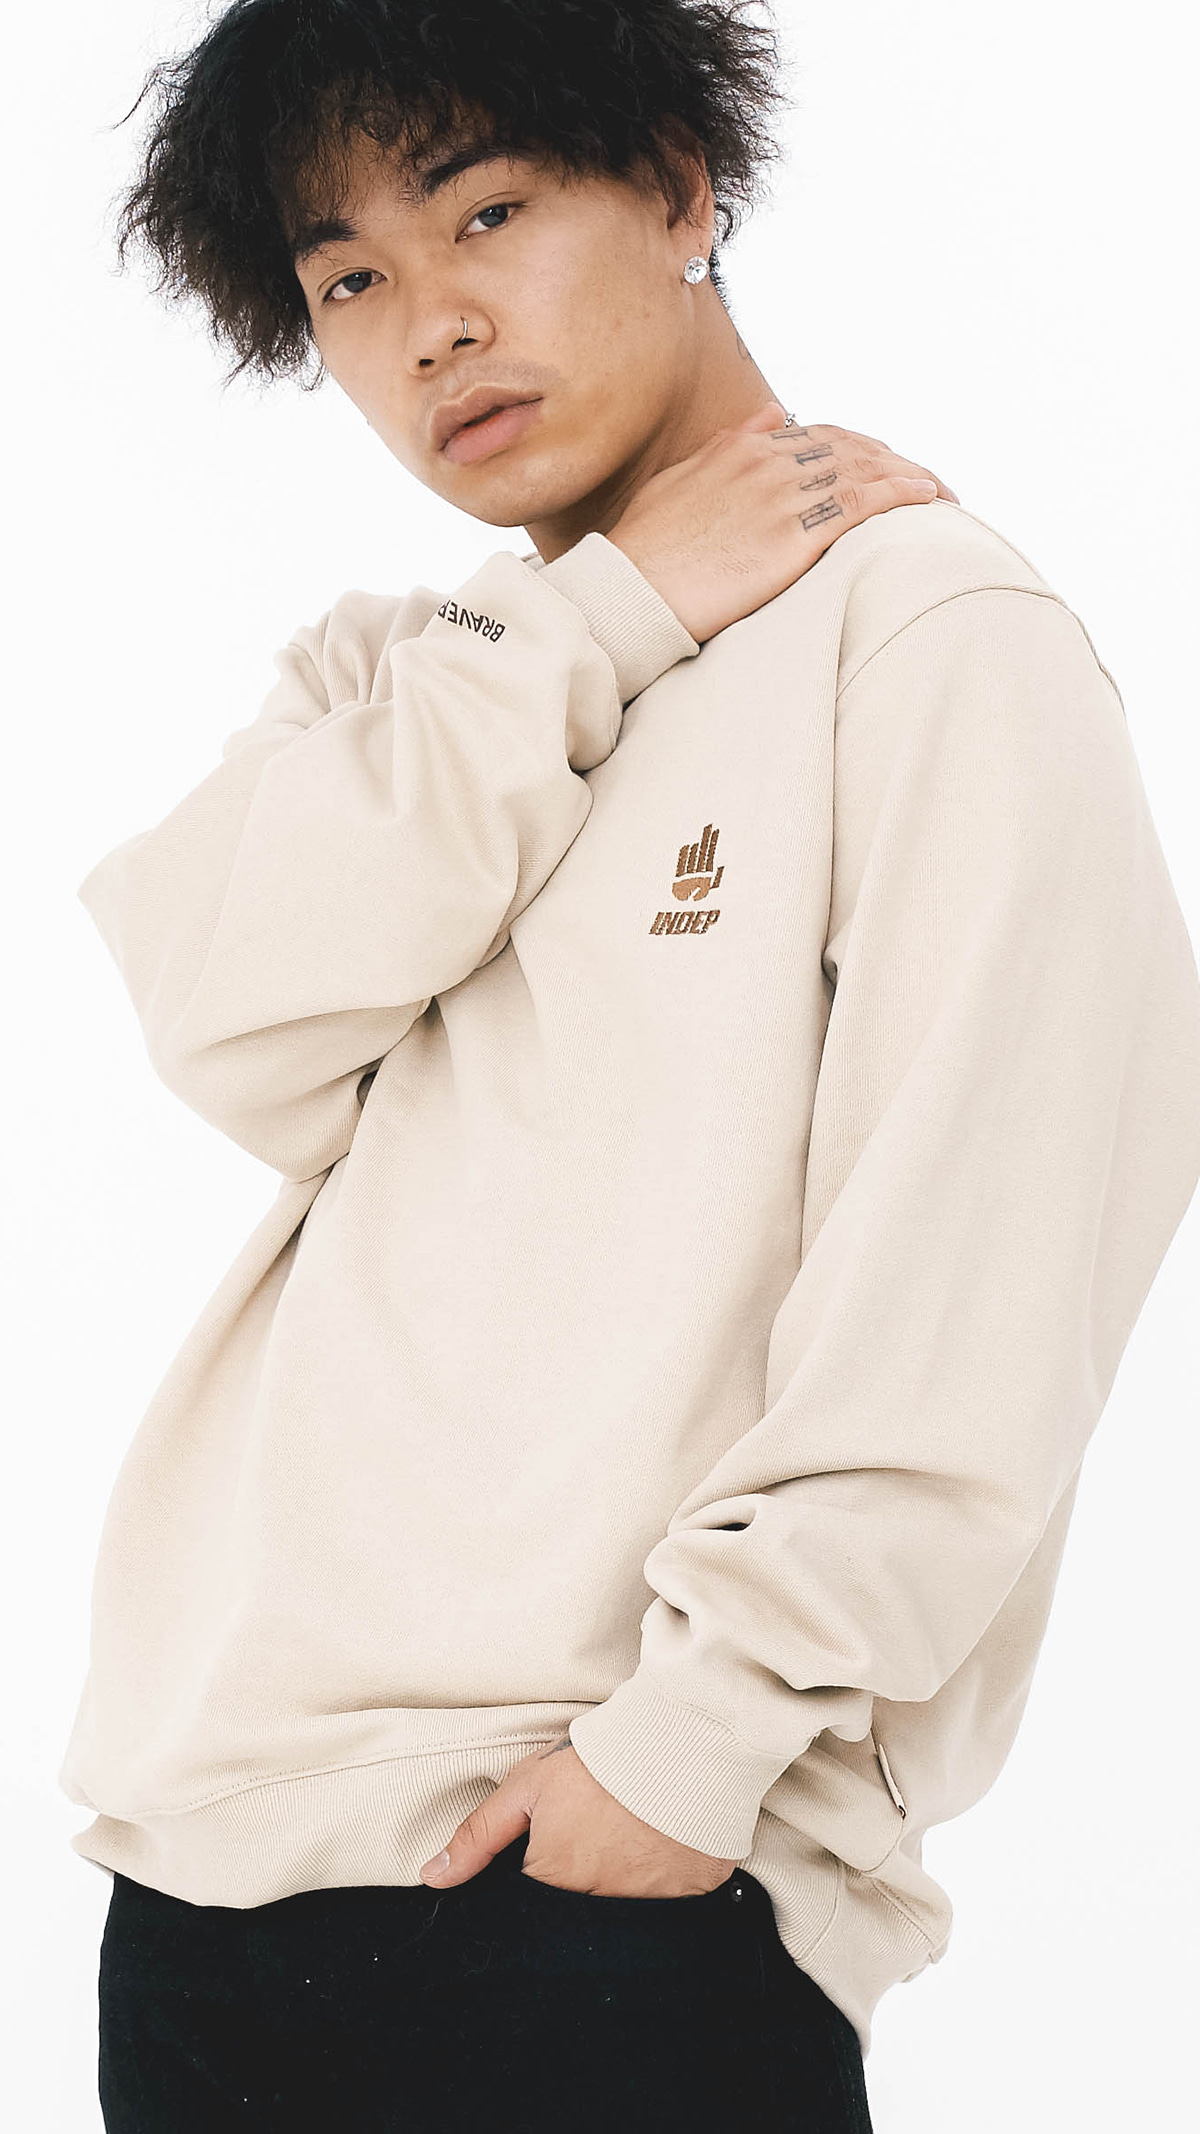 Indep Symbol Crew Neck Sweatshirt_BG